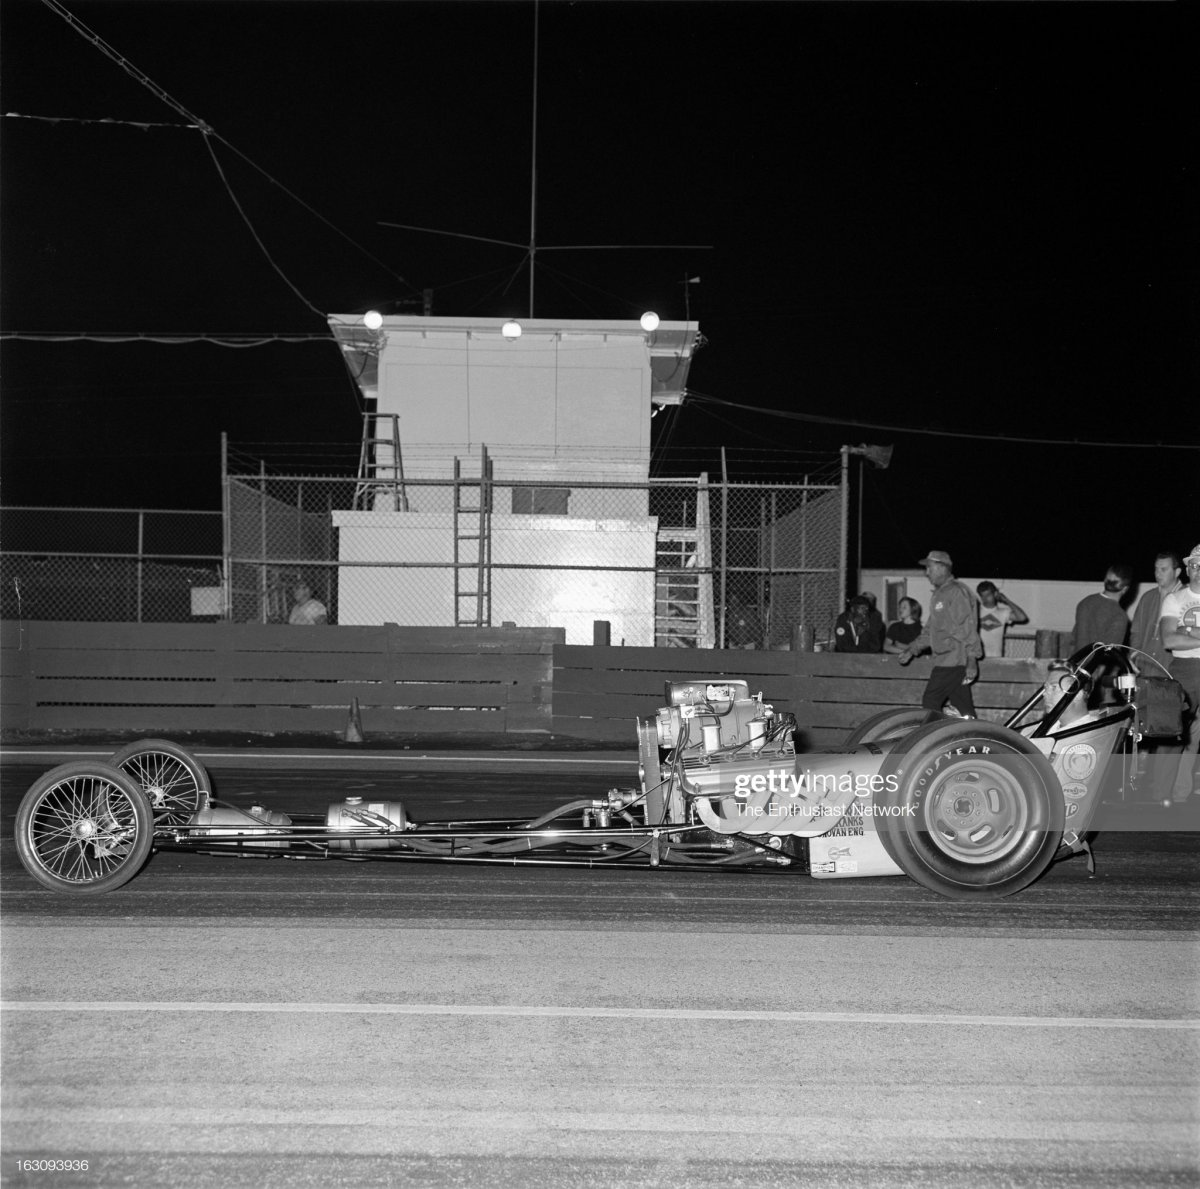 1965 AHRA Drag Races - Lions Drag Strip. 2.jpg